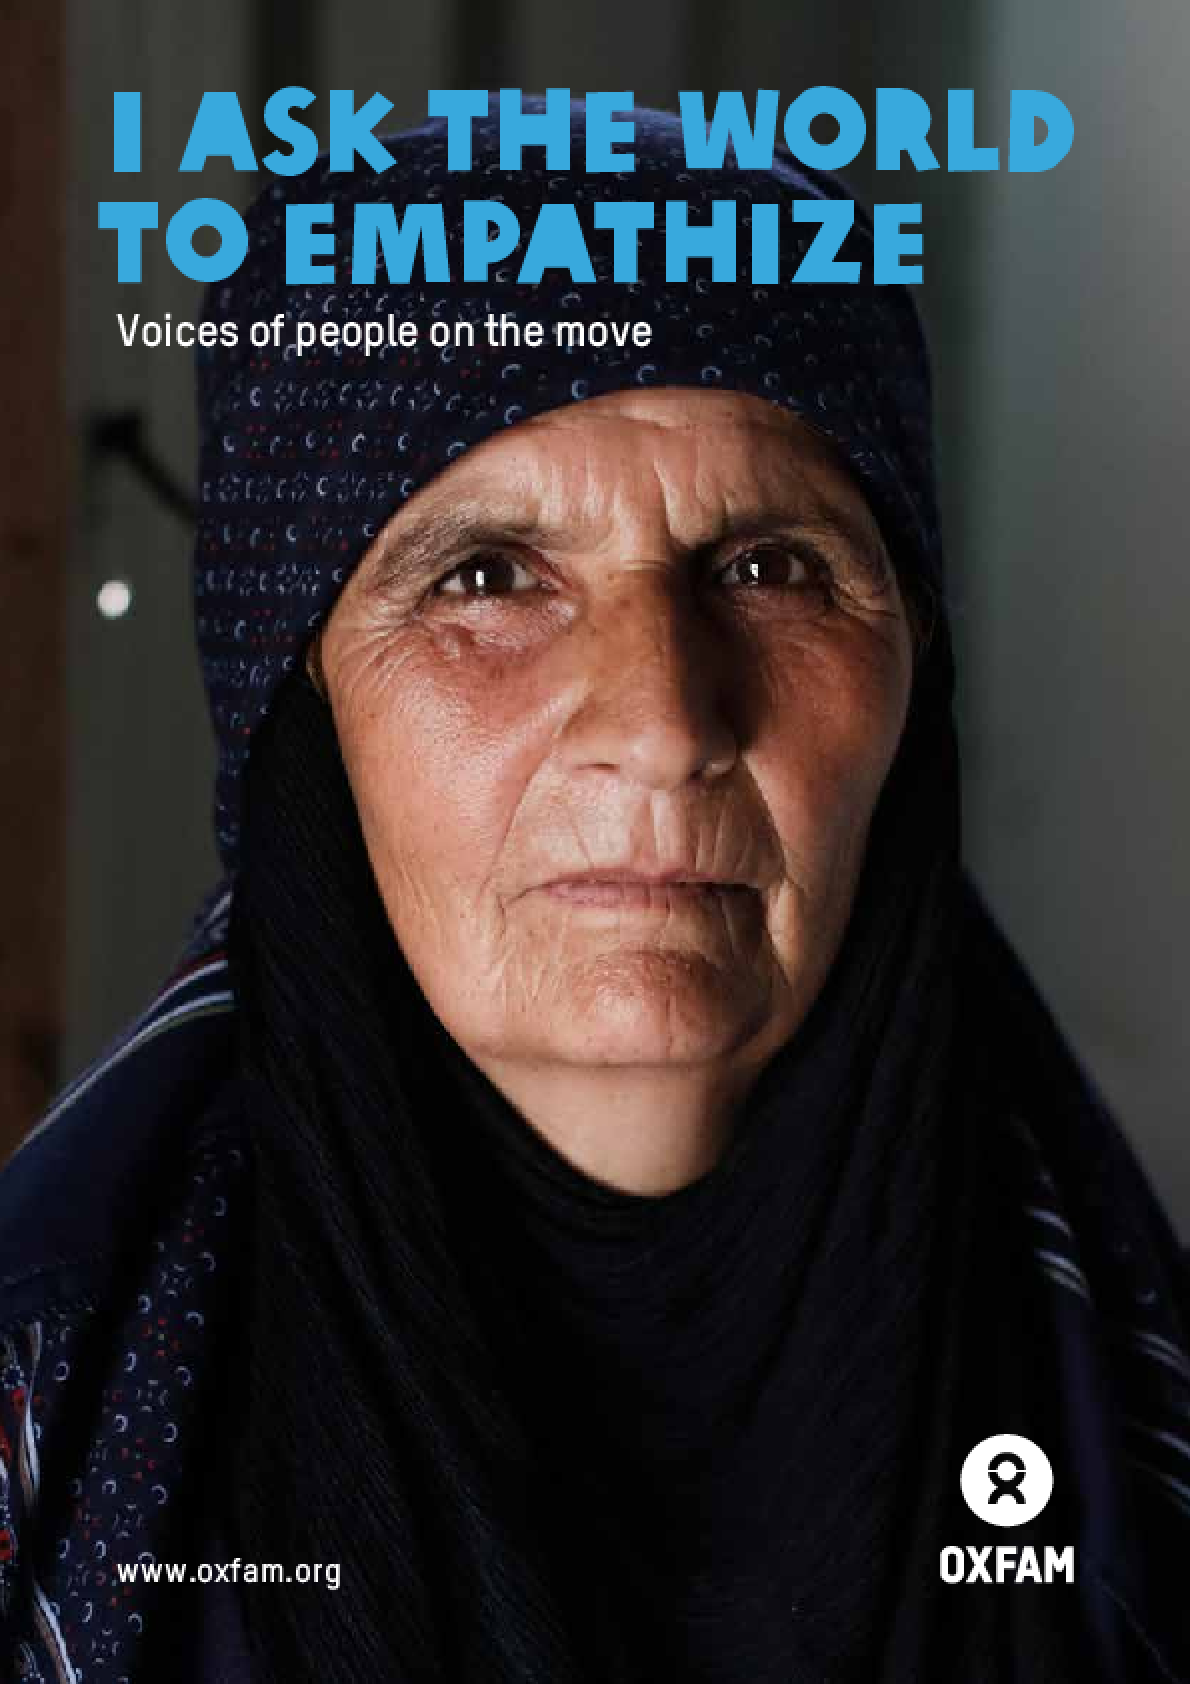 I Ask the World to Empathize: Voices of people on the move